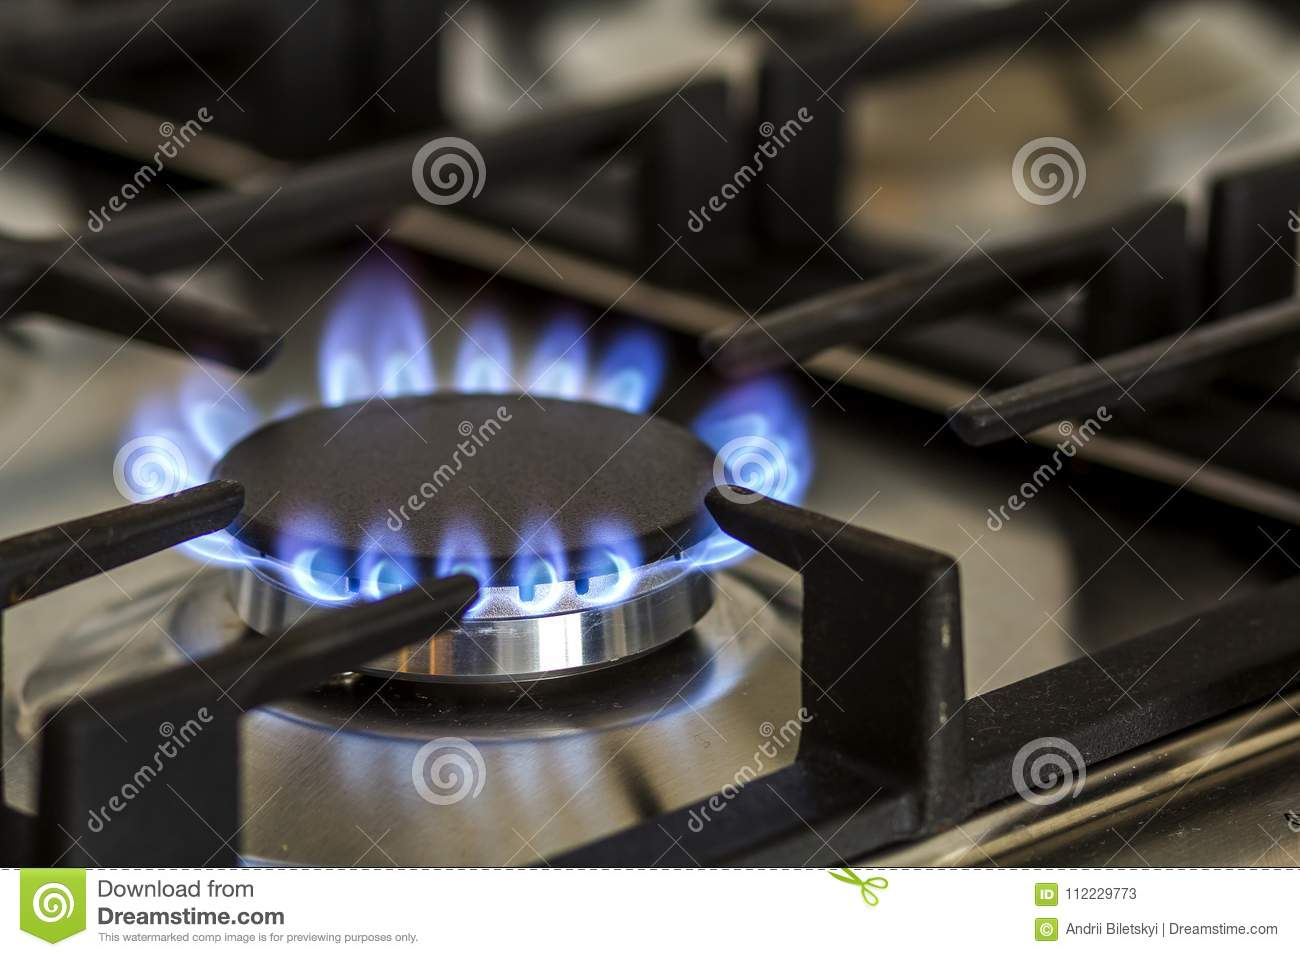 Natural gas burning on kitchen gas stove in the dark. Panel from steel with a gas ring burner on a black background, close-up shoo